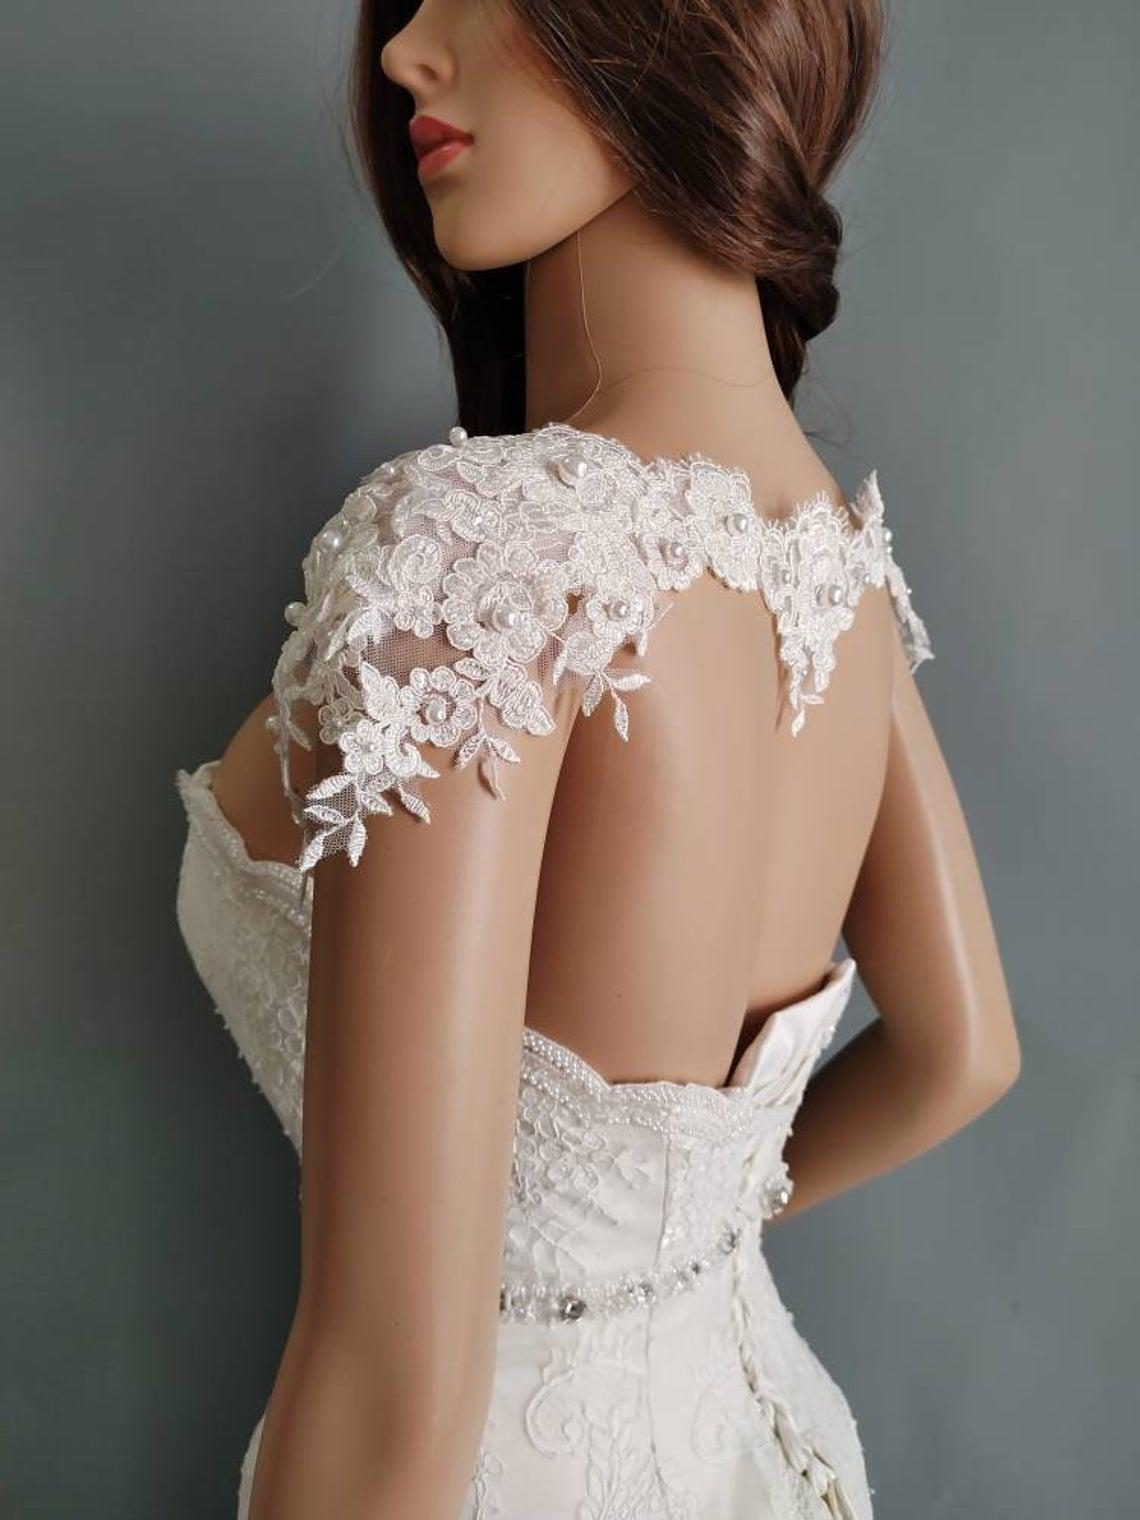 Pearls flower Cape Sewed Delicate beads, pearl lace necklace, bridal Shoulders Shawl, Cover Ups cape27